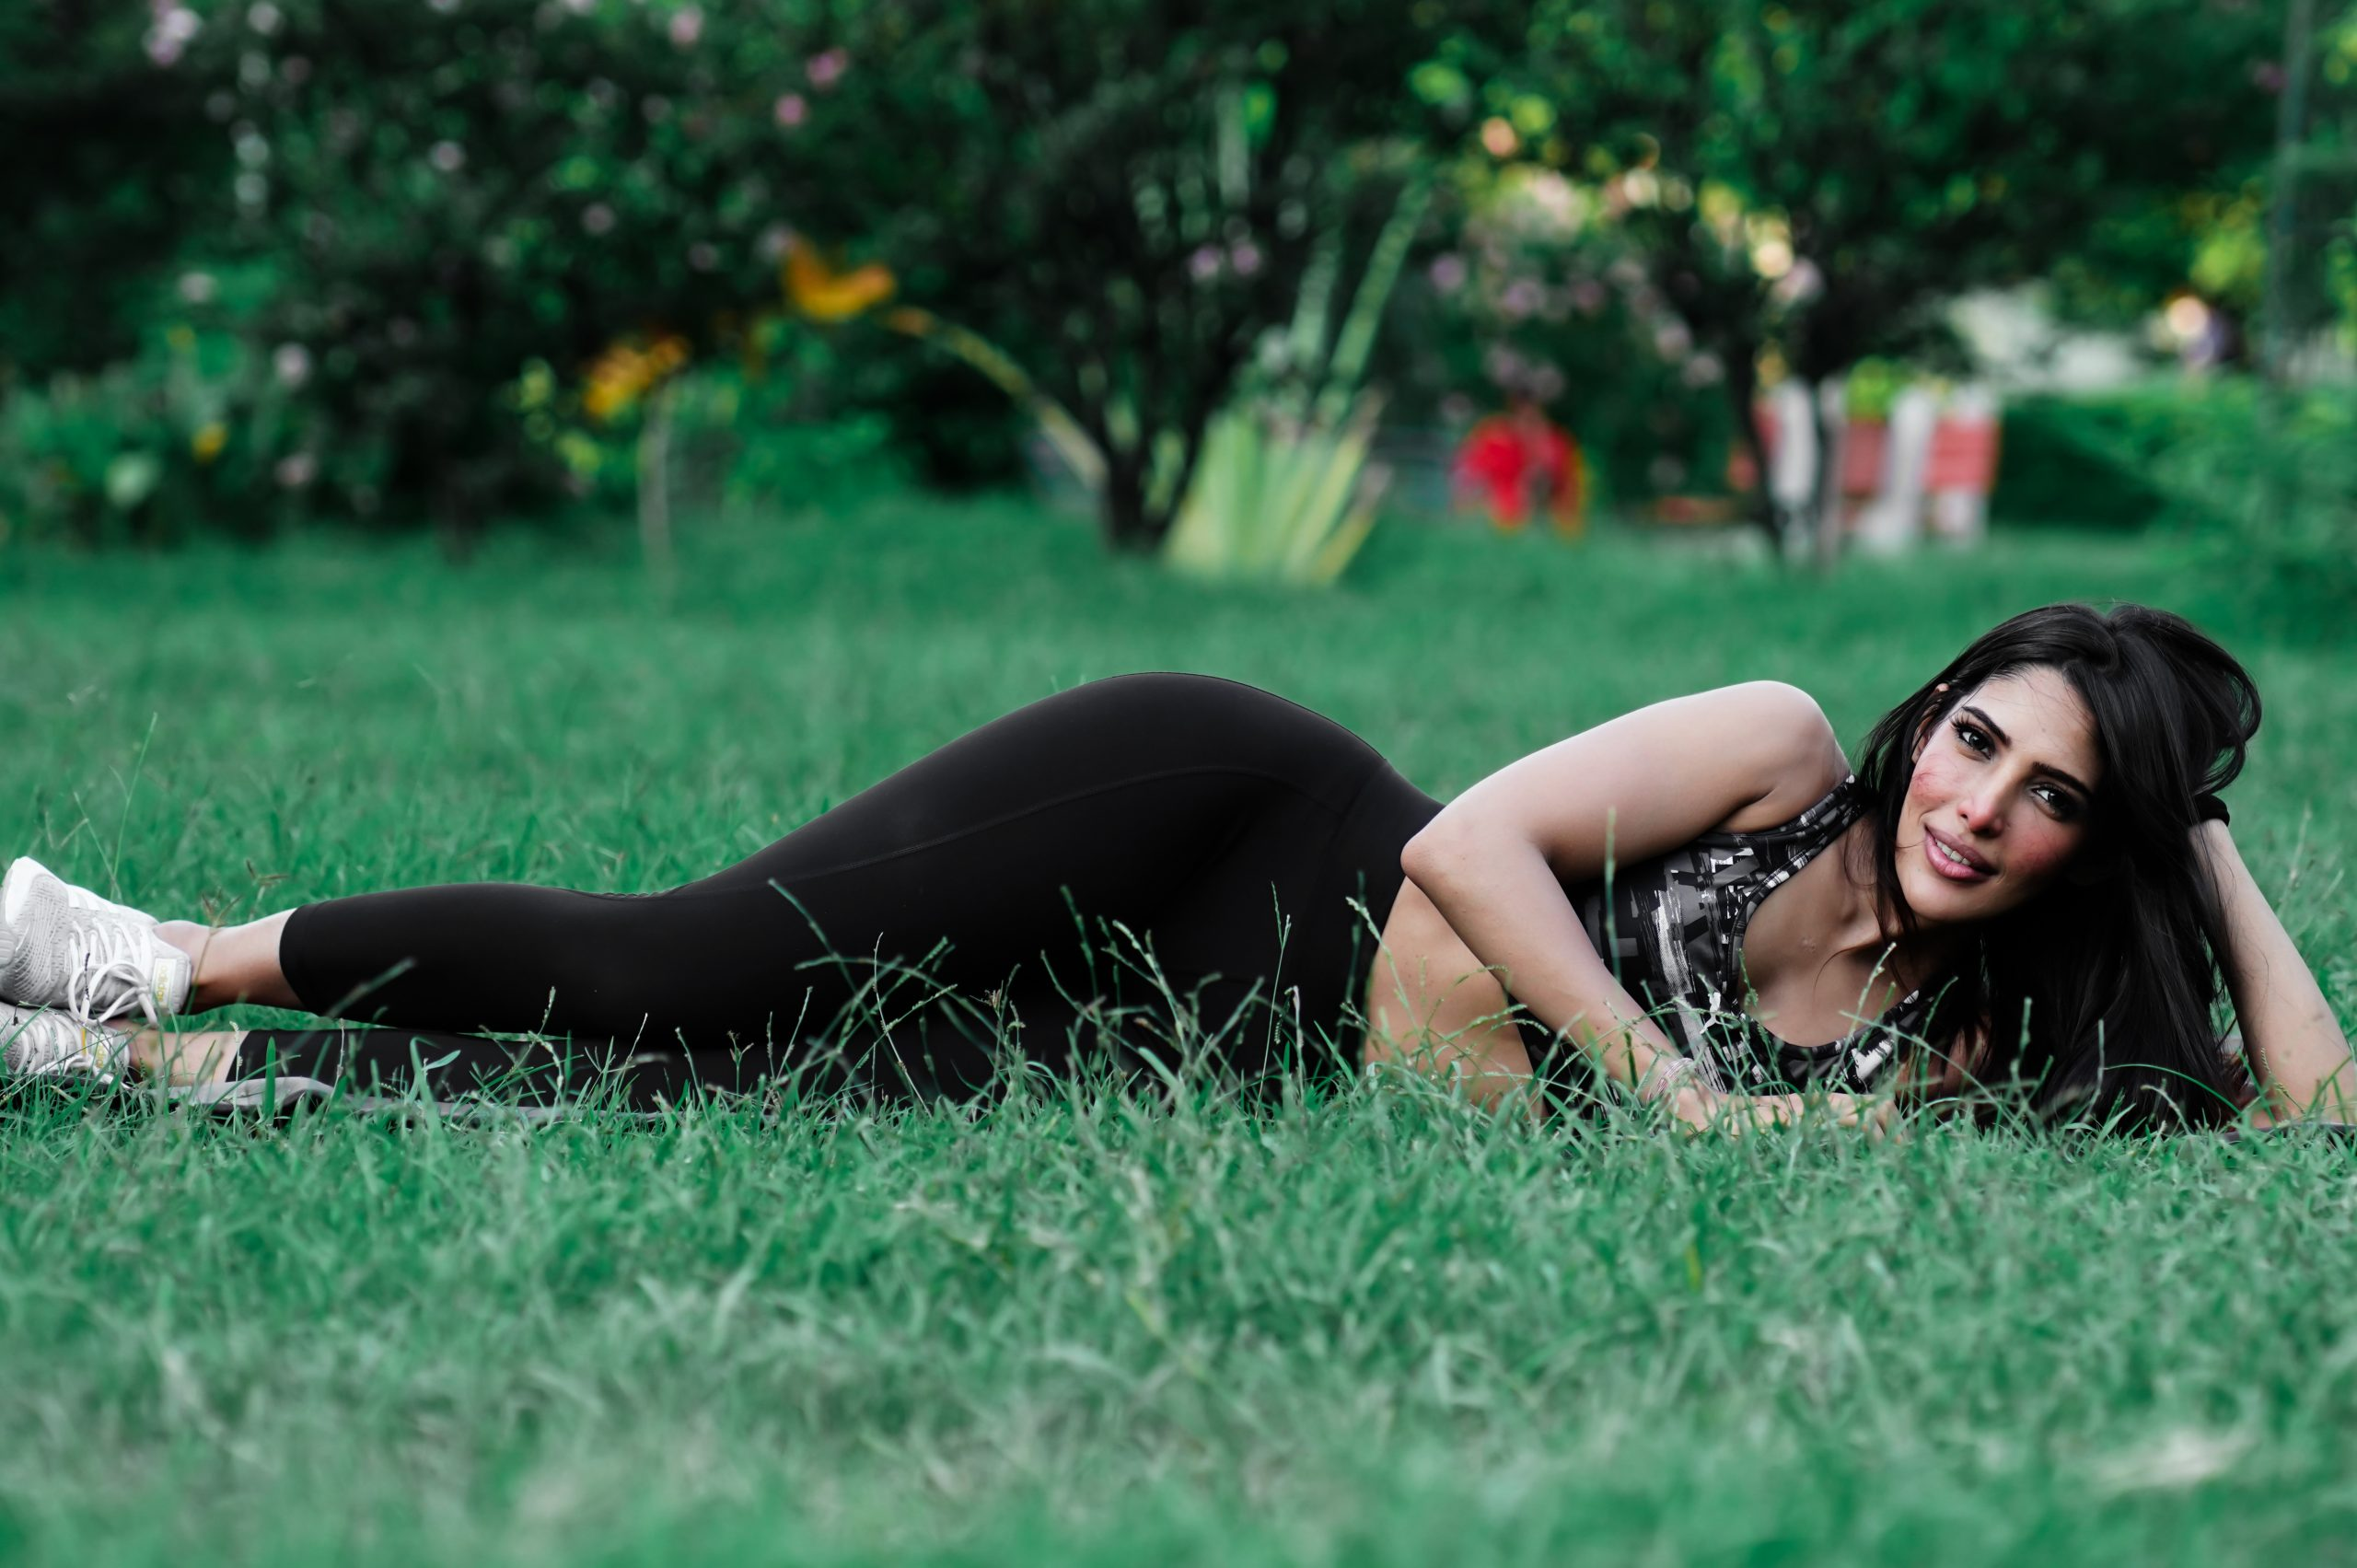 Female lying after yoga in park